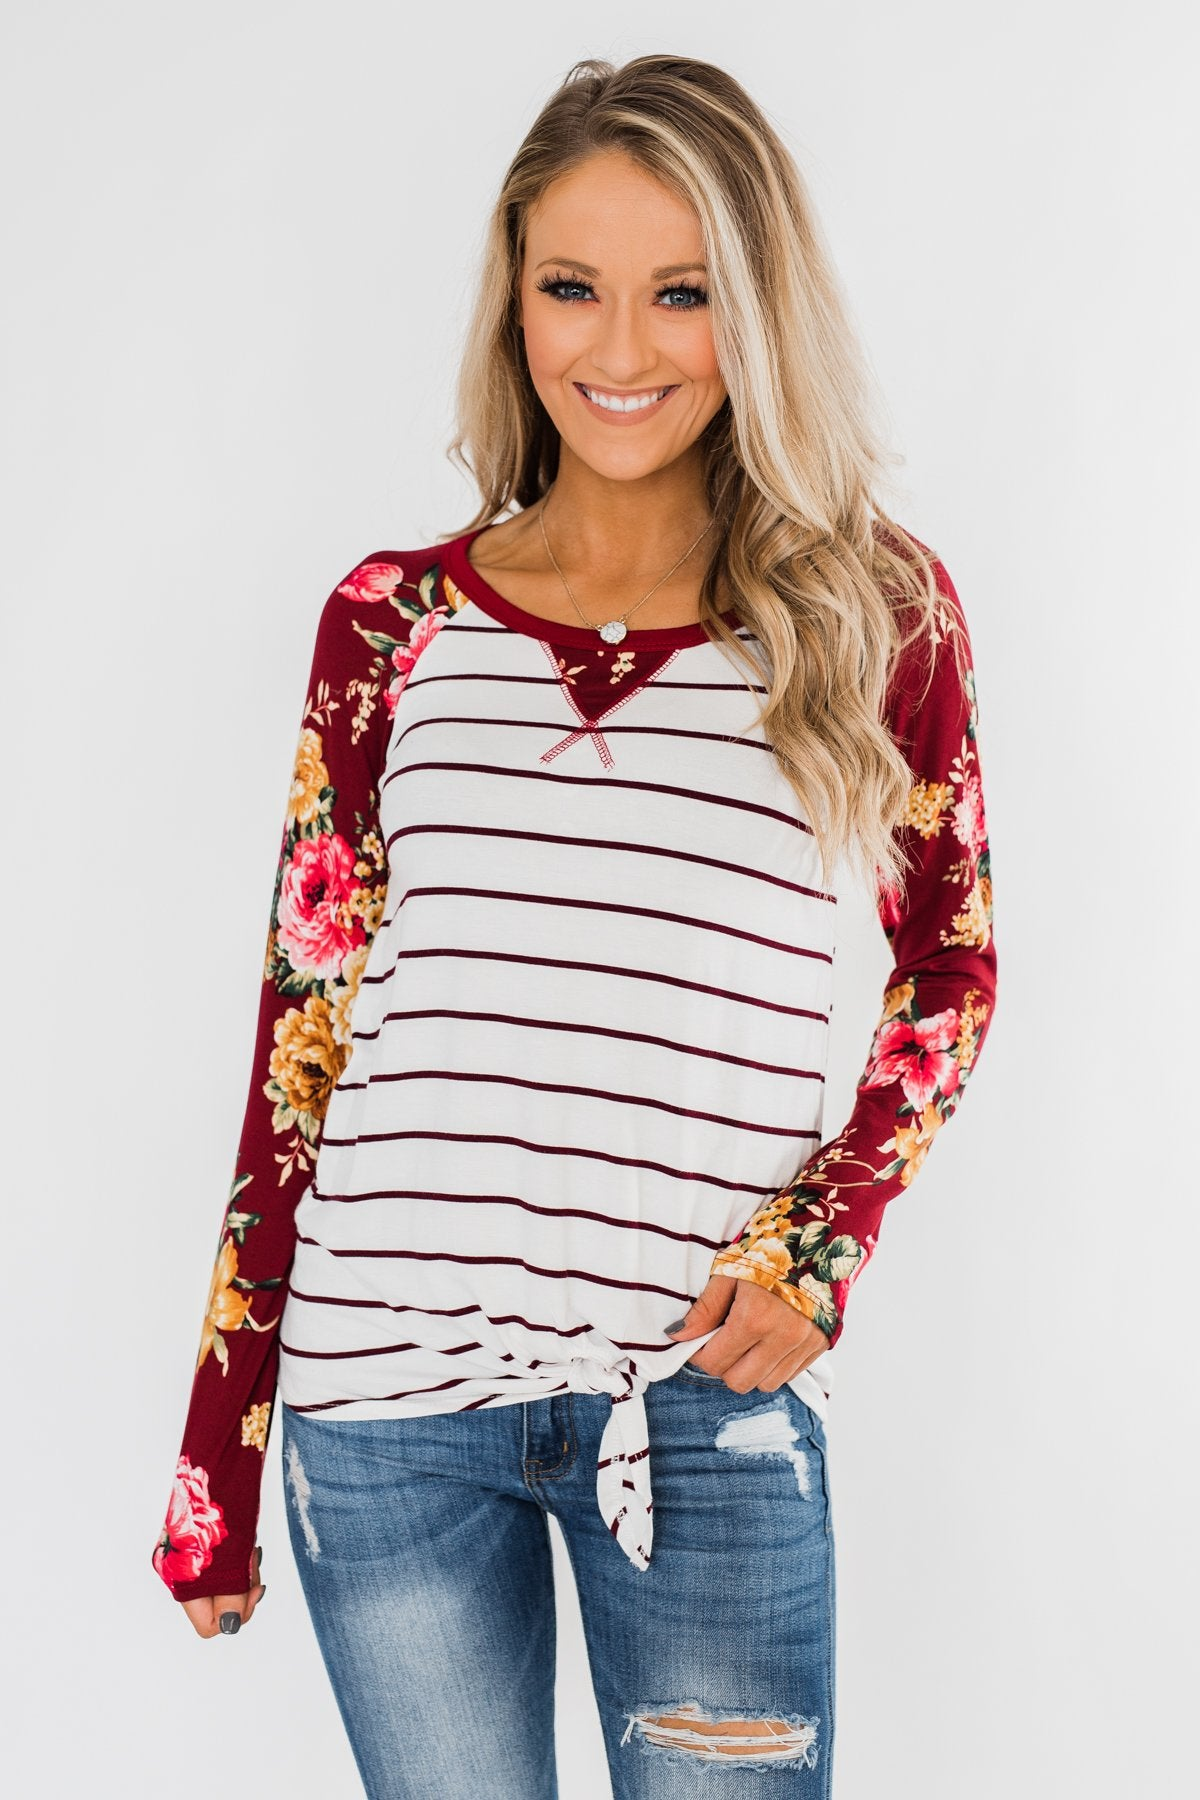 The Perfect Day Striped Floral Top- Burgundy & Ivory